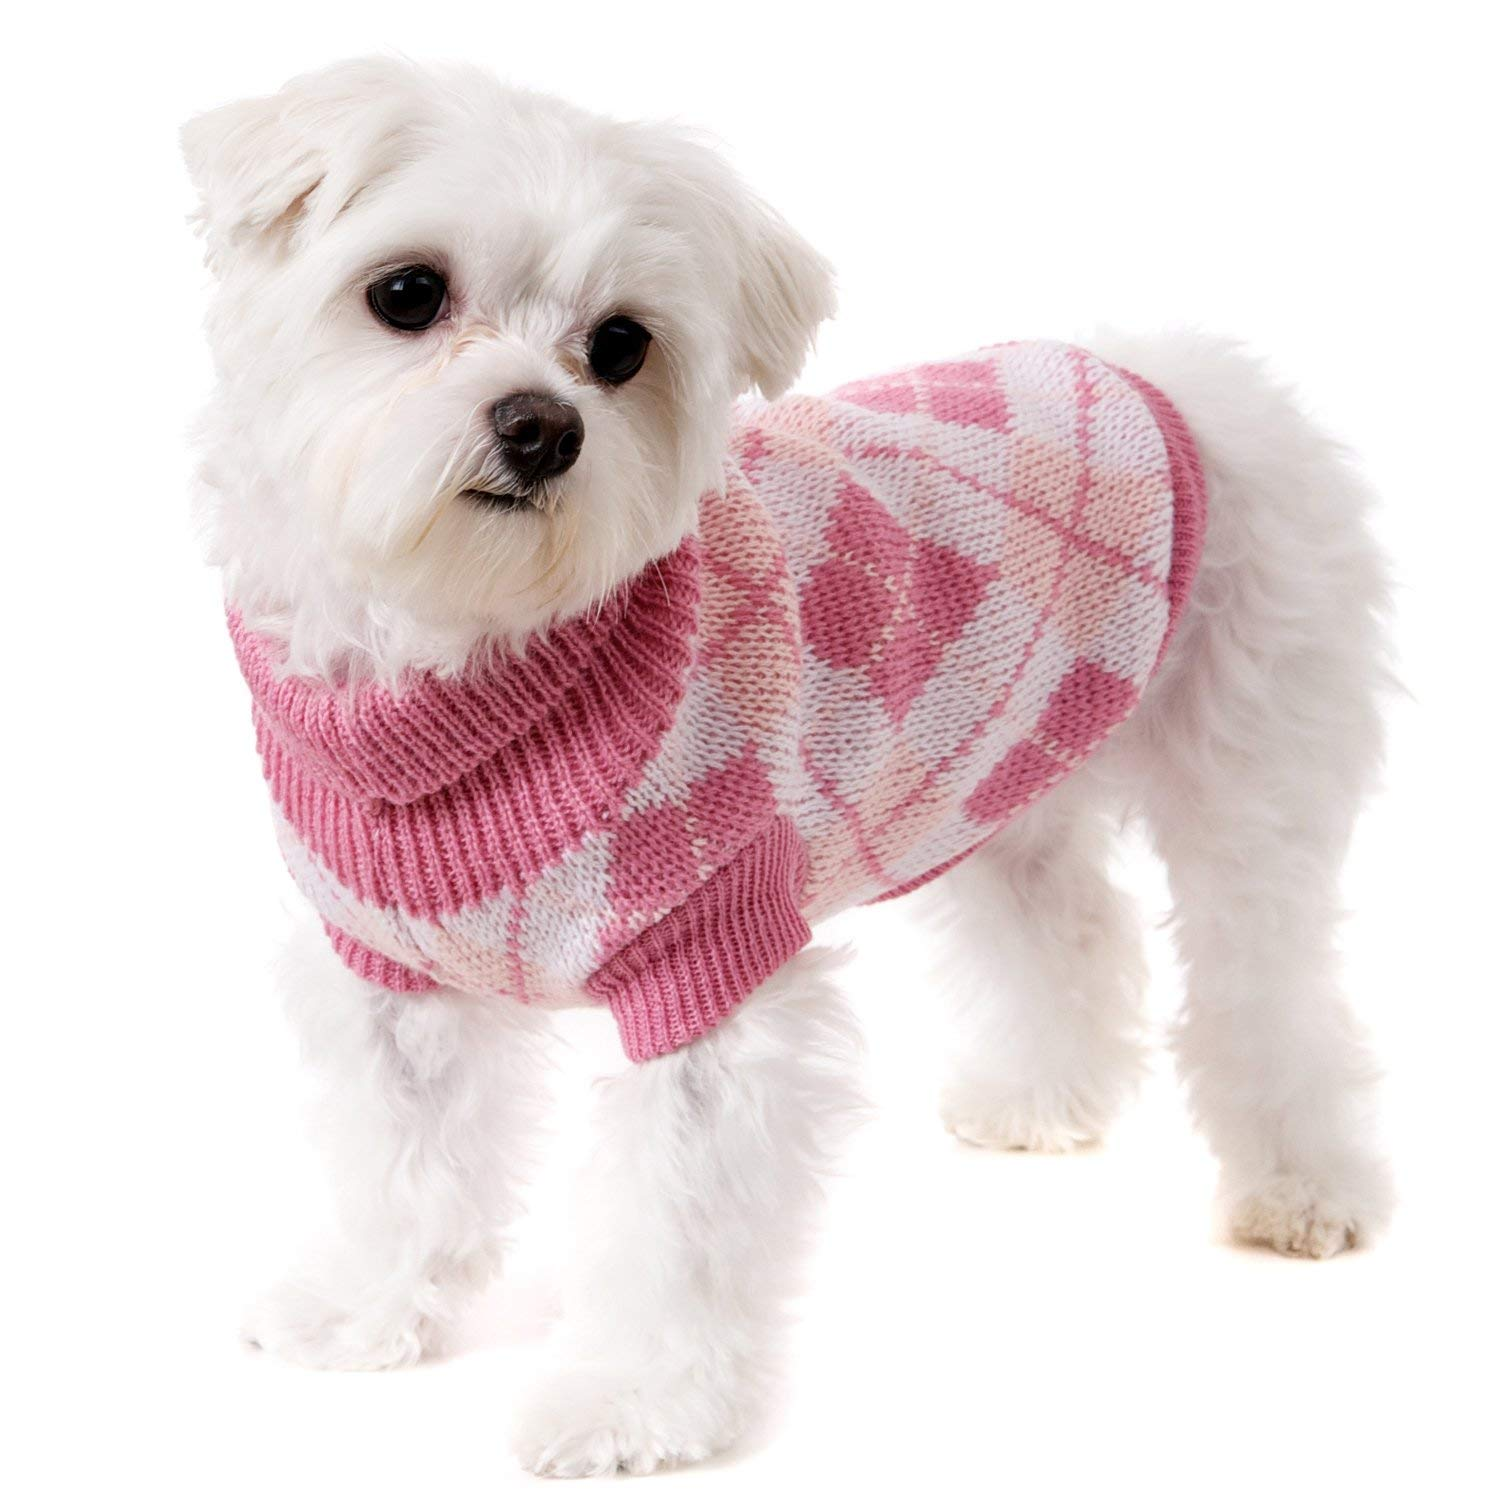 "UrbanPup Pink Argyle Sweater (Large - Dog Body Length: 14"" / 35cm)"